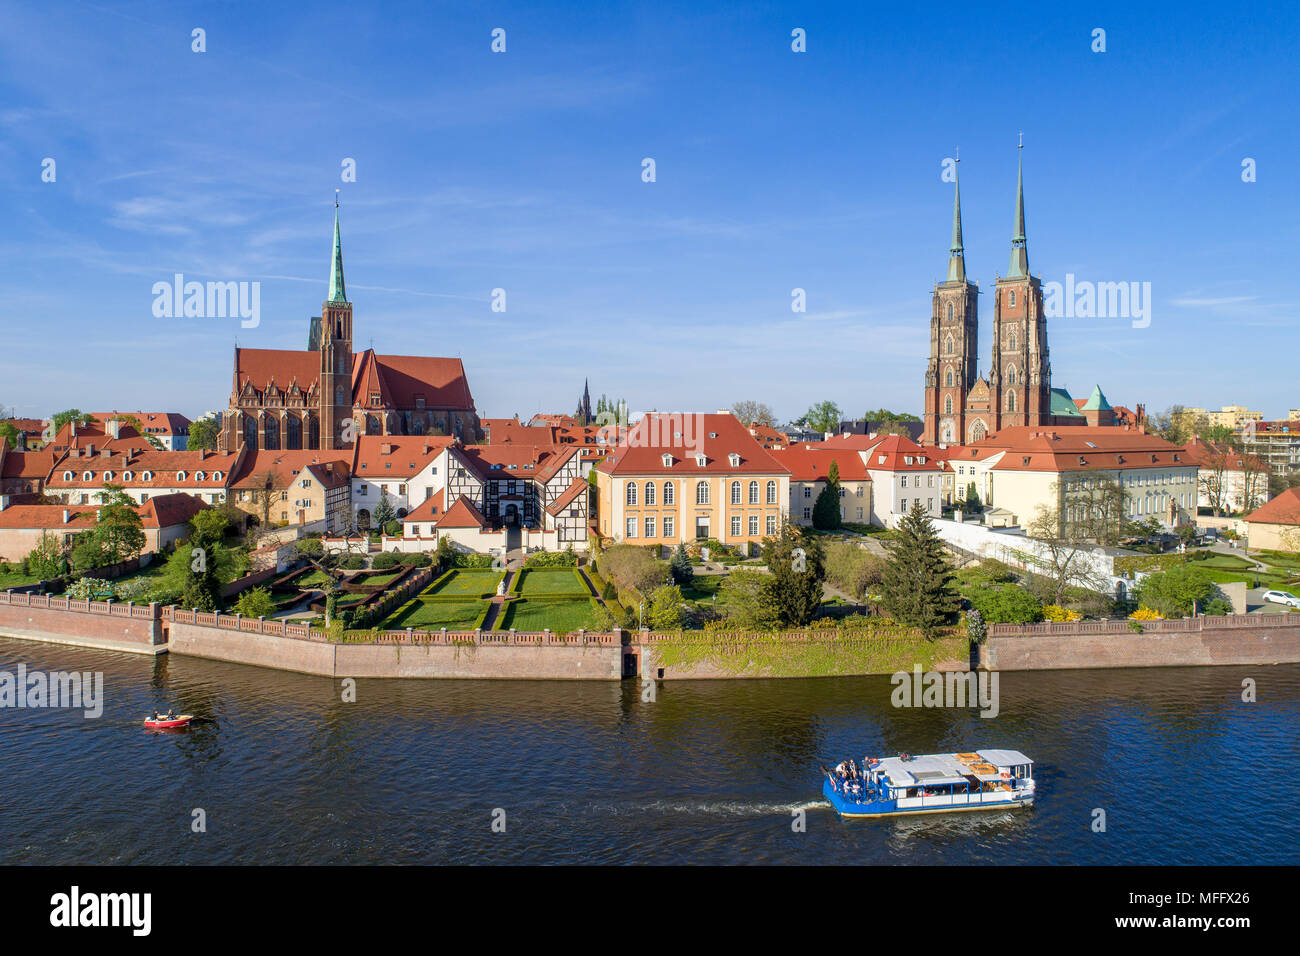 Poland. Wroclaw. Ostrow Tumski, Gothic cathedral of St. John the Baptist,  Collegiate Church of the Holy Cross, Archbishop's palace, tourist ship, boa - Stock Image